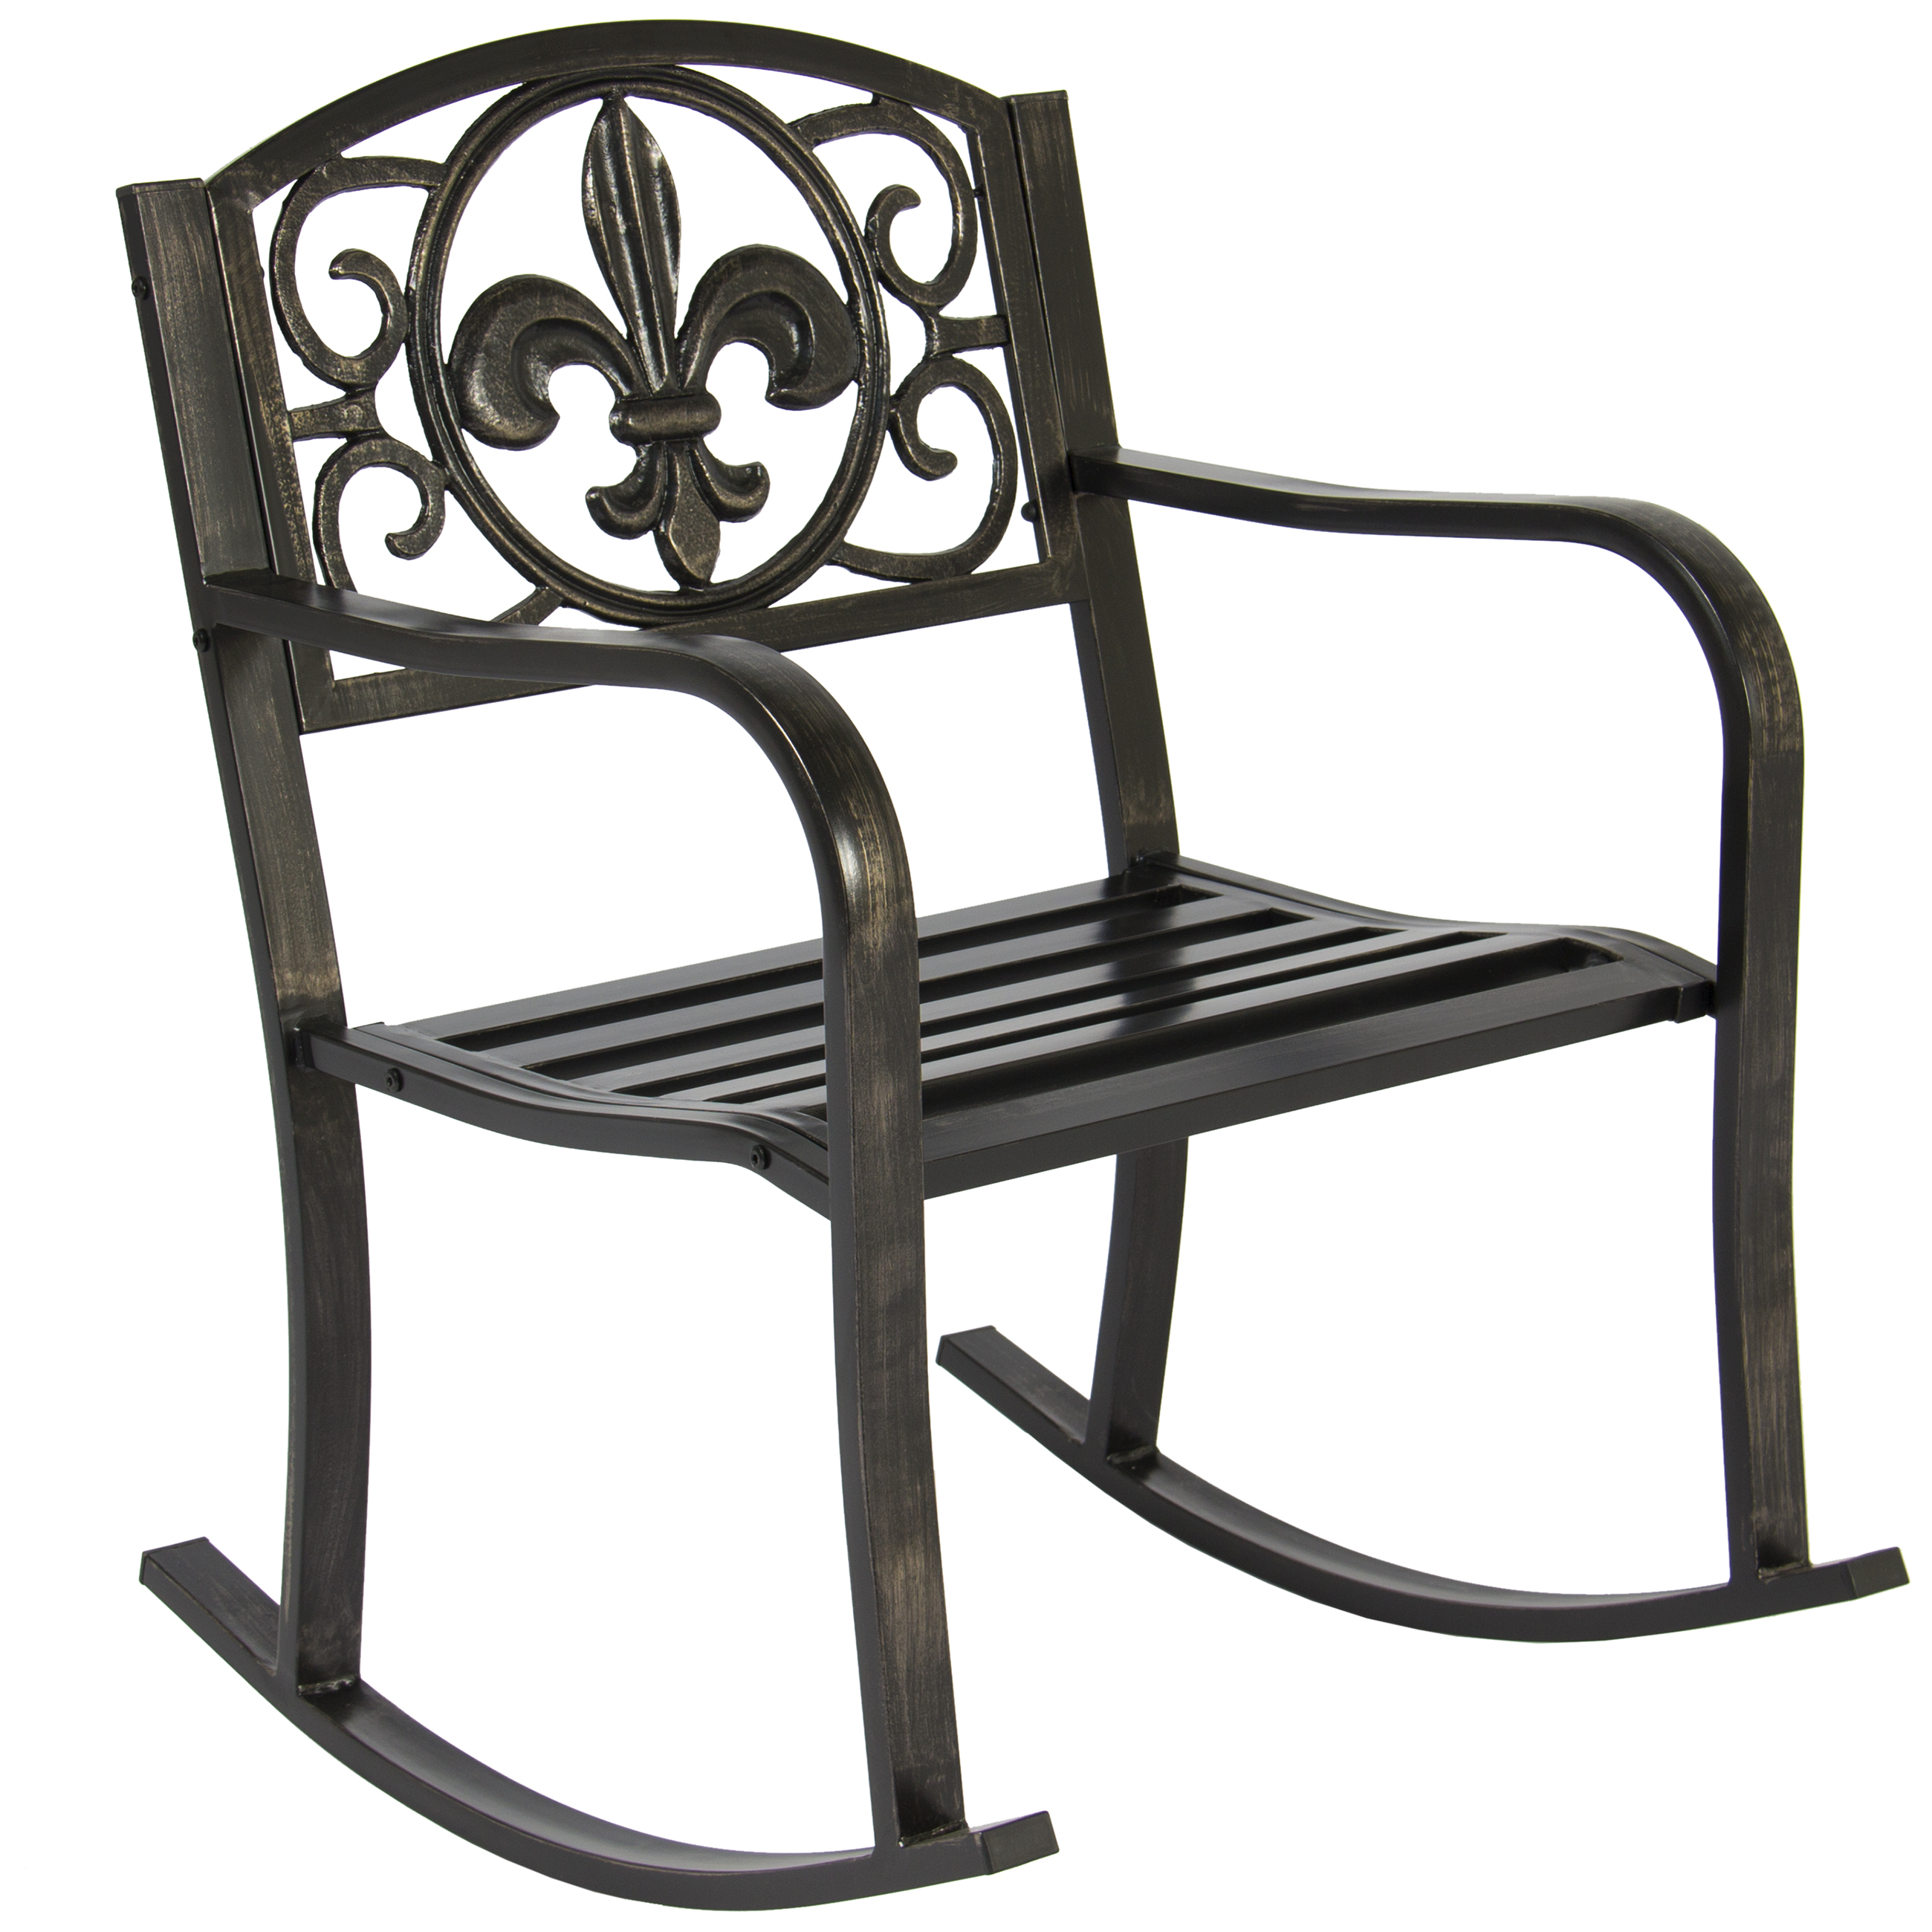 Best Place To Buy Rocking Chairs Patio Metal Rocking Chair Porch Seat Deck Outdoor Backyard Glider Rocker